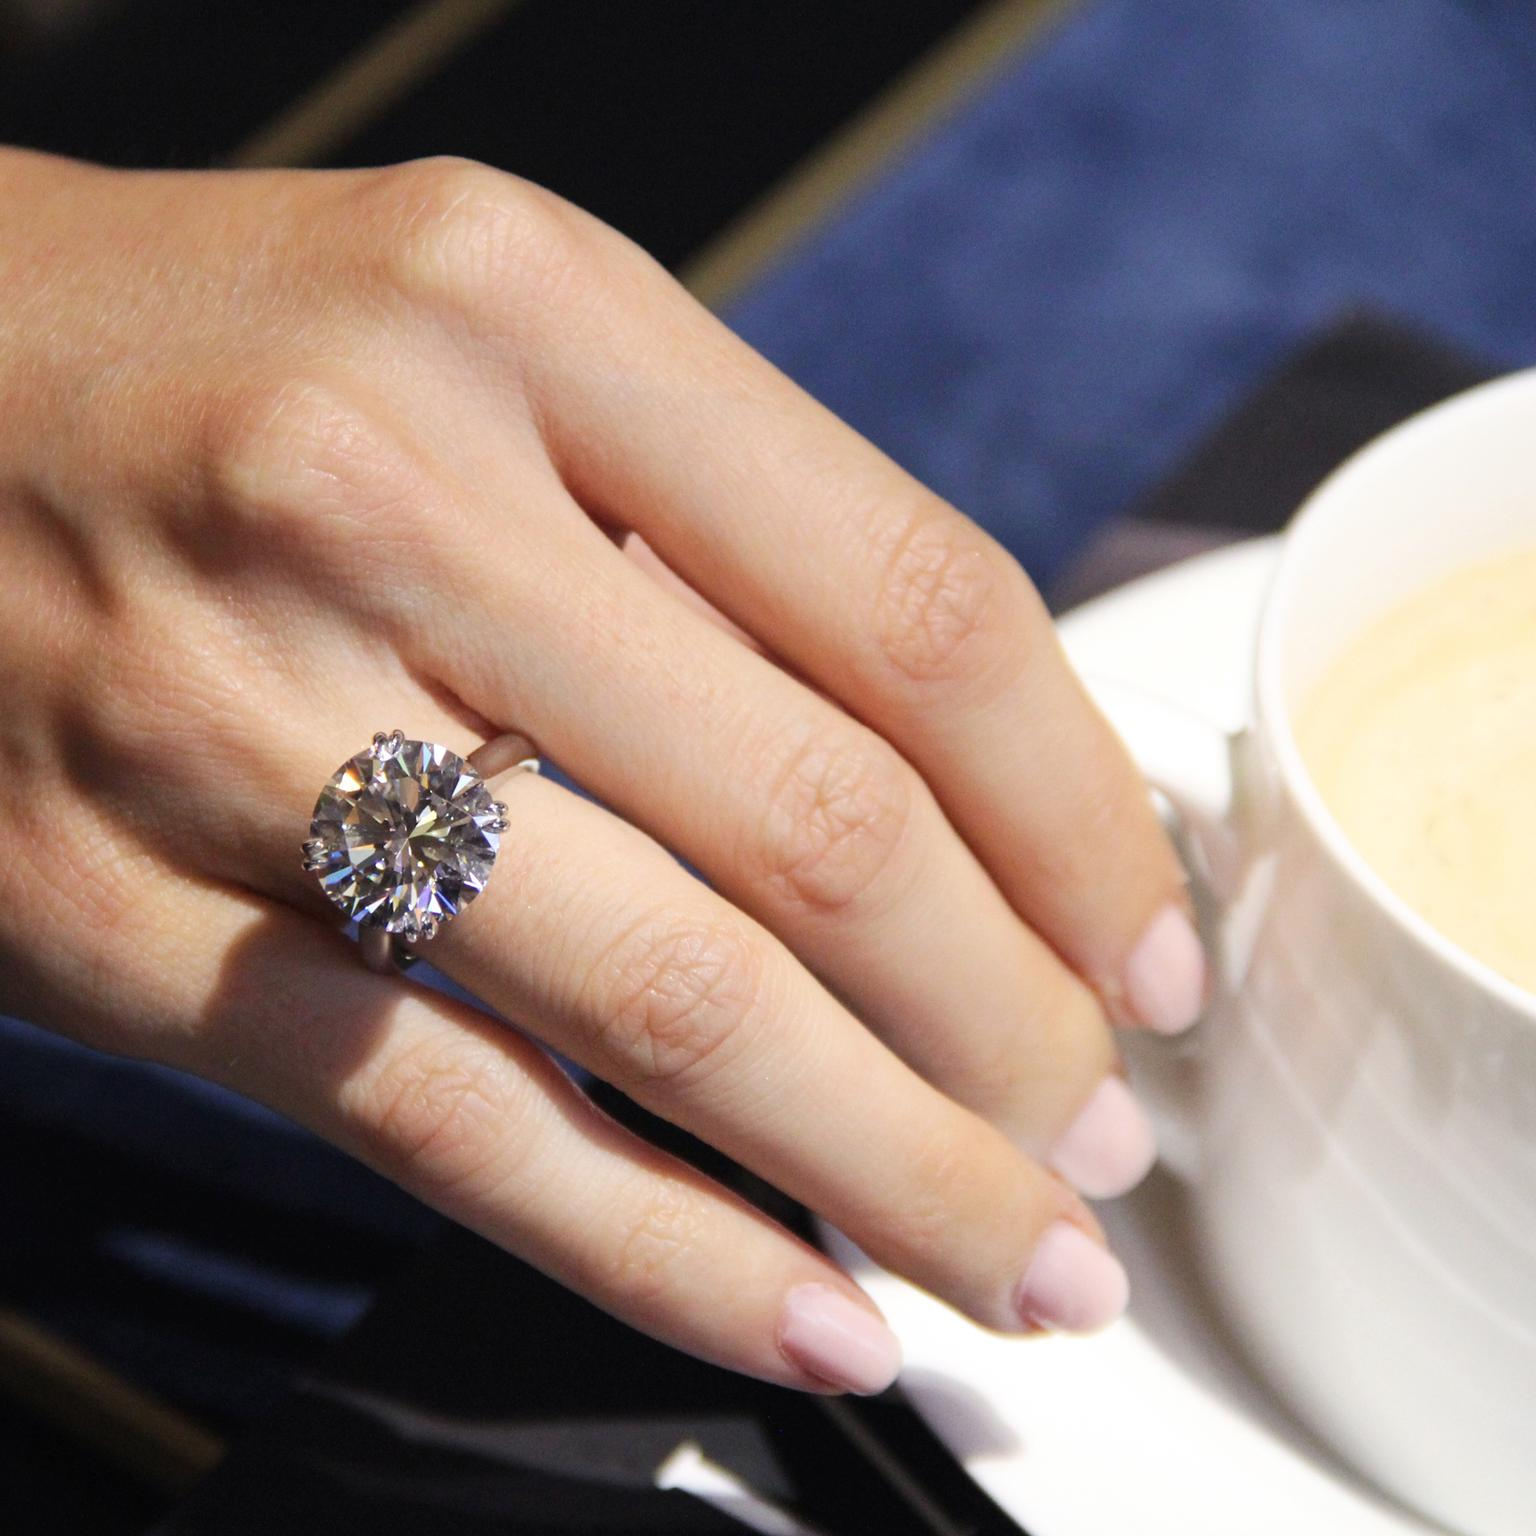 10.6 carrot diamond from Harry Winston  (read about it here)